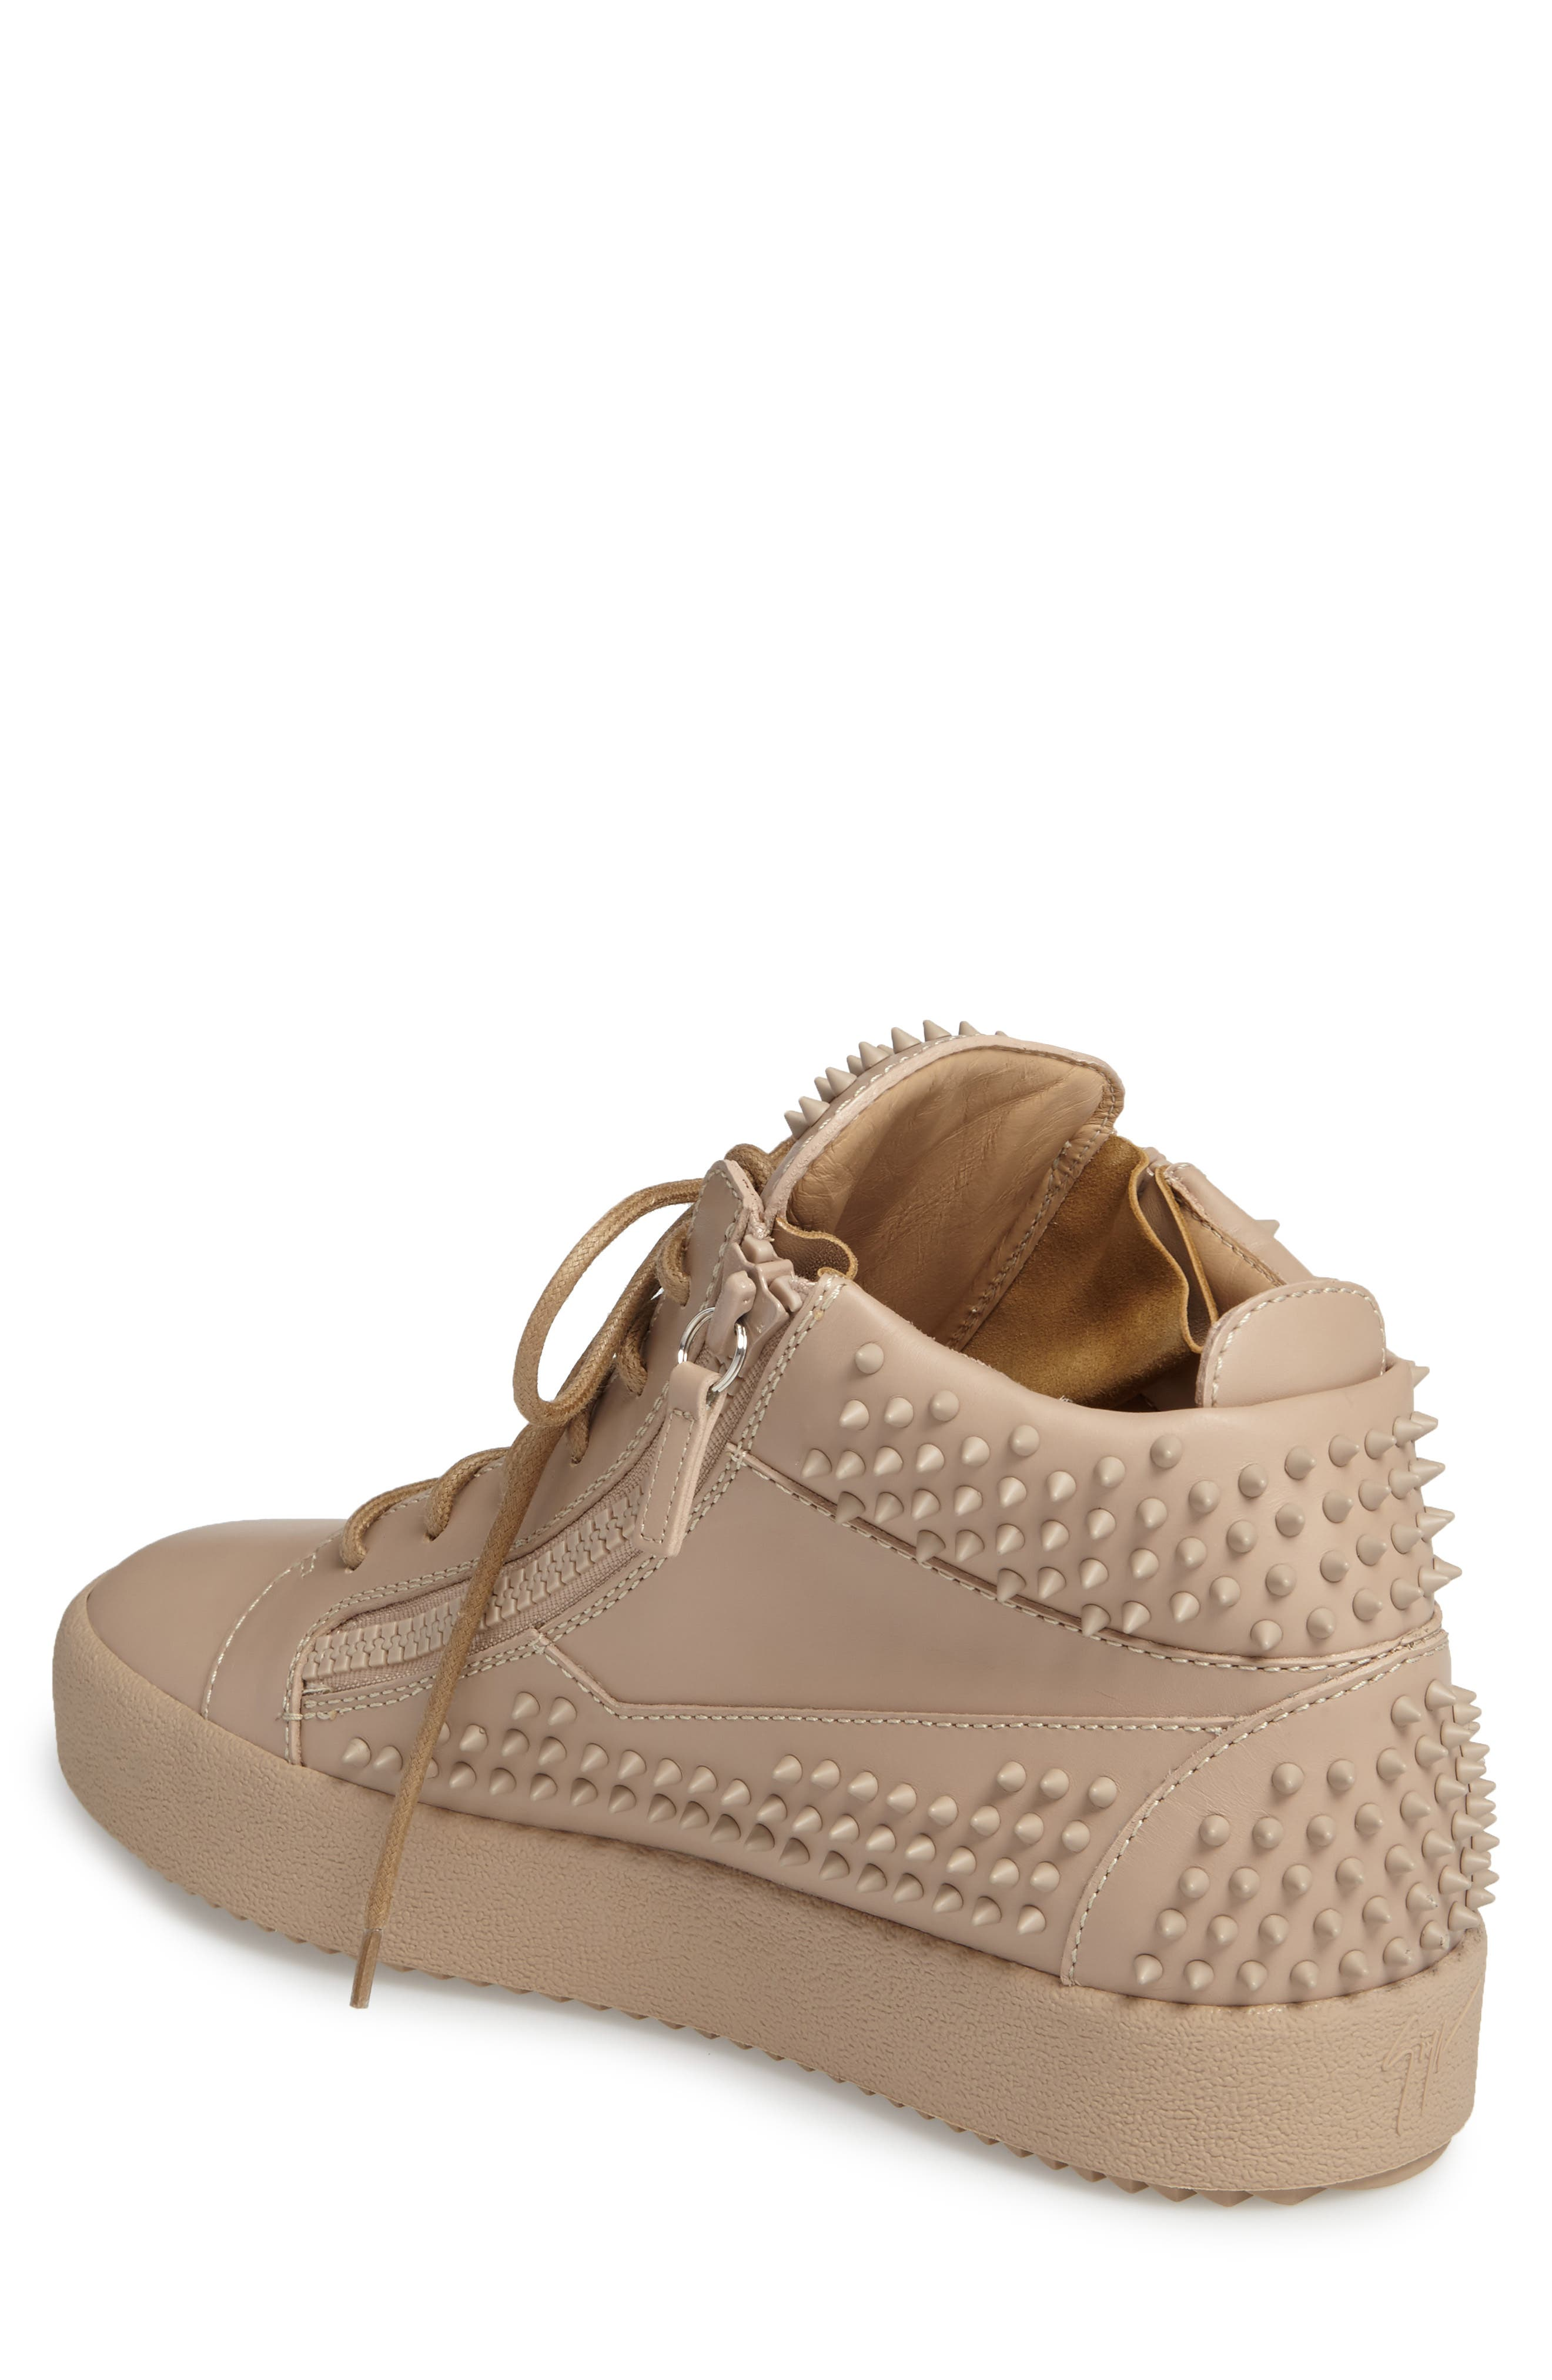 Studded Mid Top Sneaker,                             Alternate thumbnail 2, color,                             250